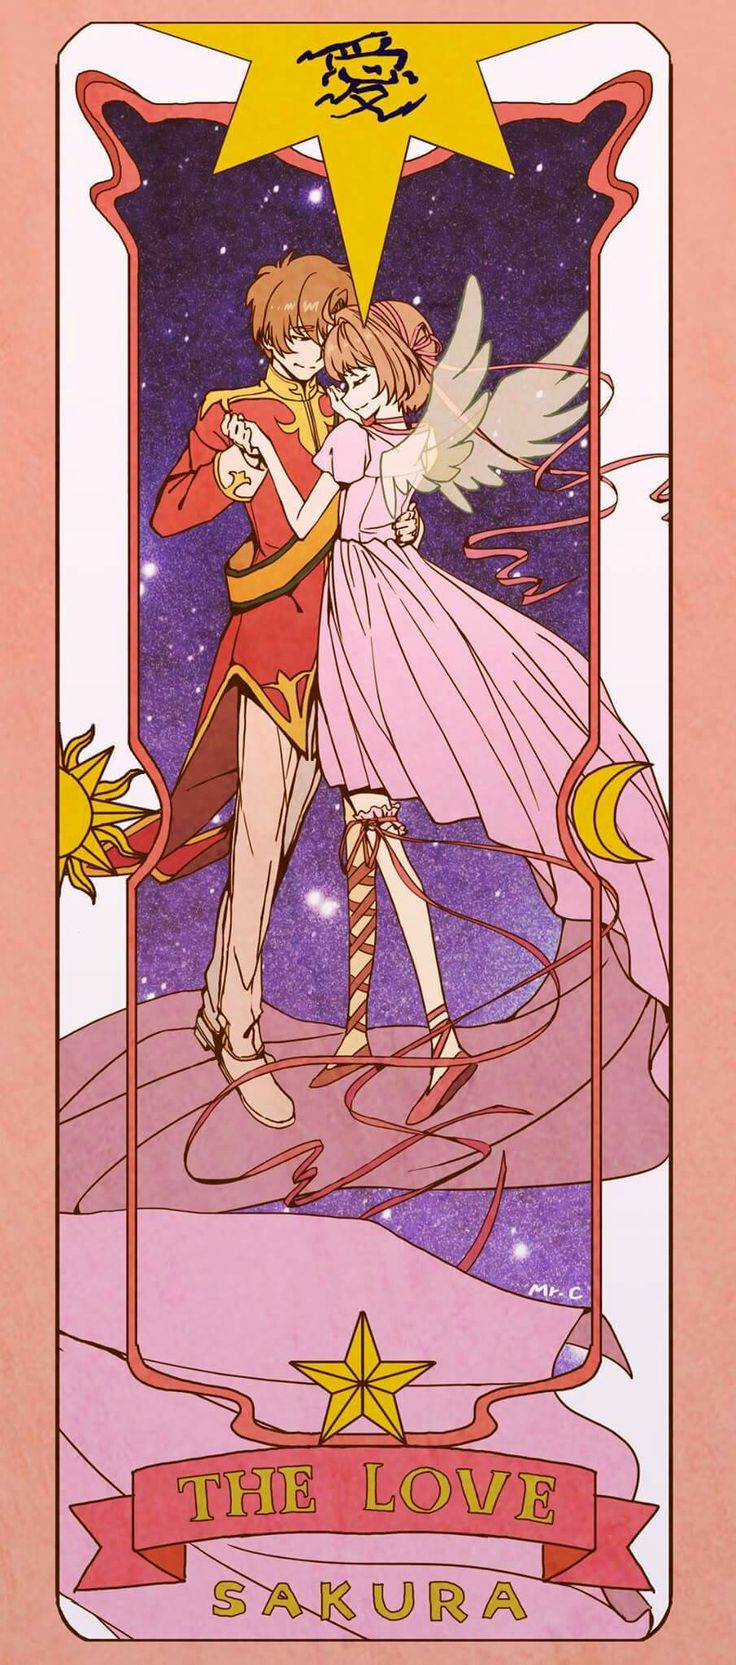 Sakura cart captor - Love card - This anime is one of my favorites, forever CLAMP